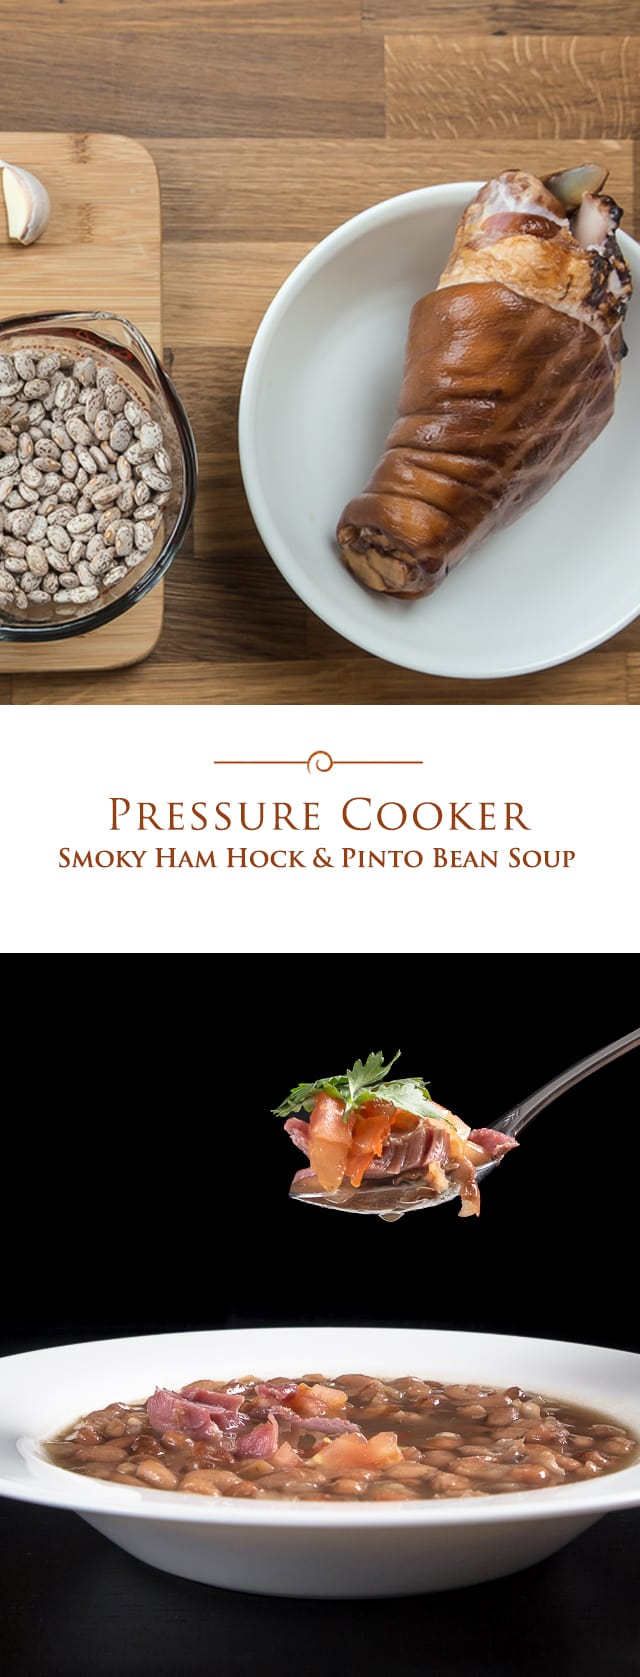 Smoky Ham Hock and Pinto Bean Soup is full of textures and flavors. You'll love the tender & moist ham lending its' smoky flavors to the fulfilling soup. This easy pressure cooker ham and bean soup recipe makes the perfect comfort food dinner. #soup #instantpot #pressurecooker via @PressureCook2da